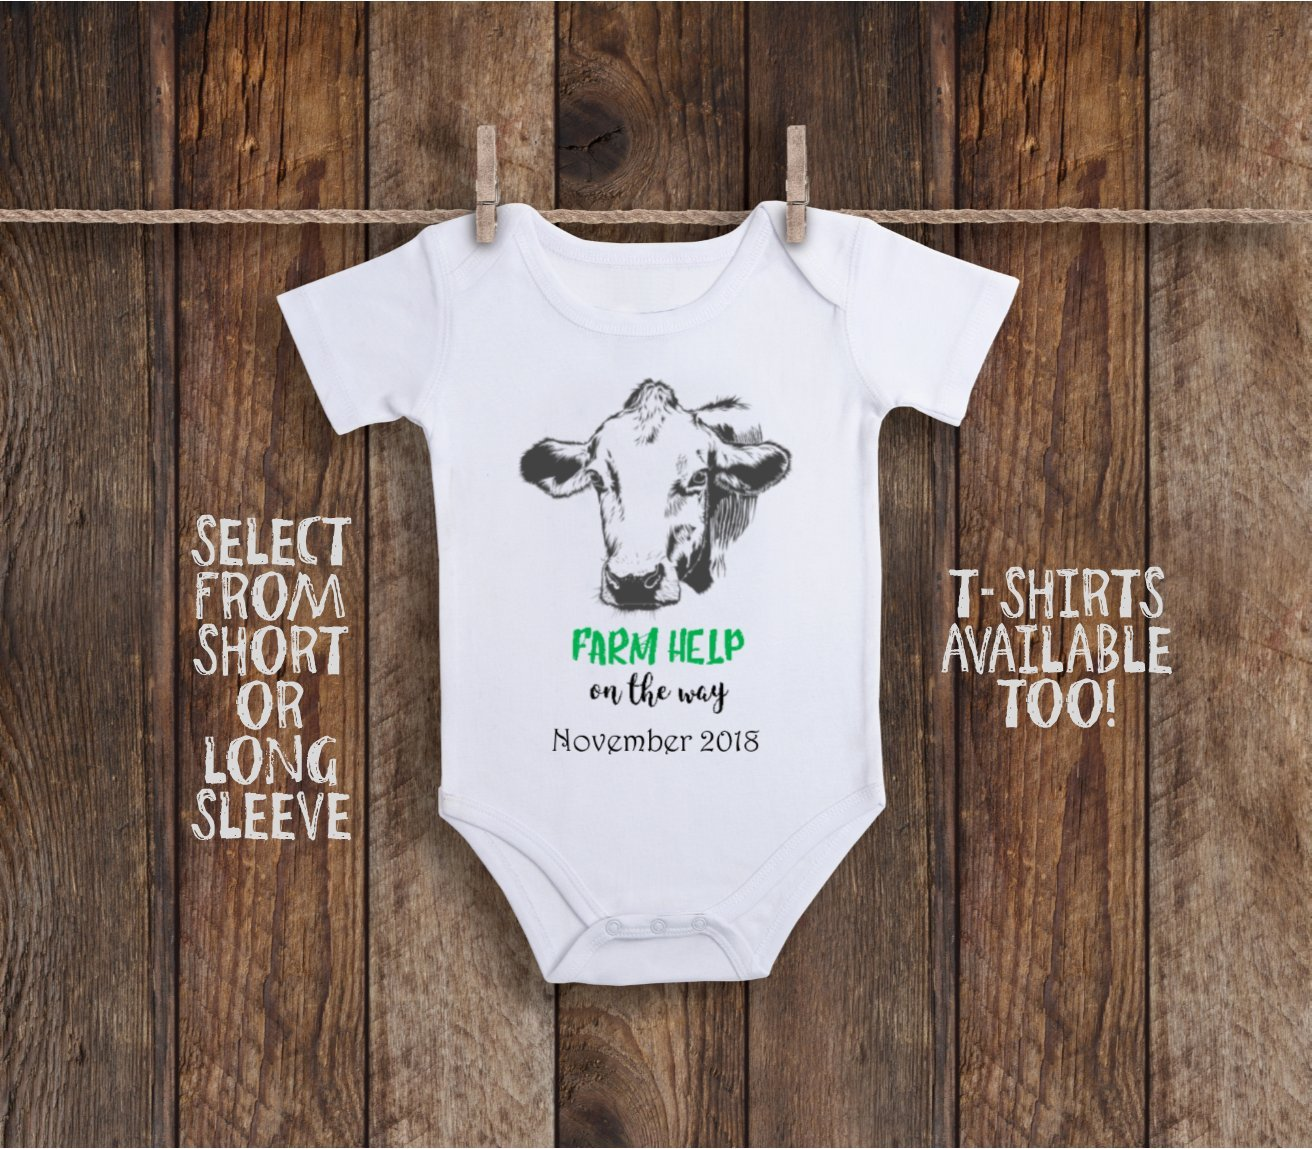 Cow Farm Help On The Way Custom Announcement Toddler Kids Tee Shirt or Baby Bodysuit